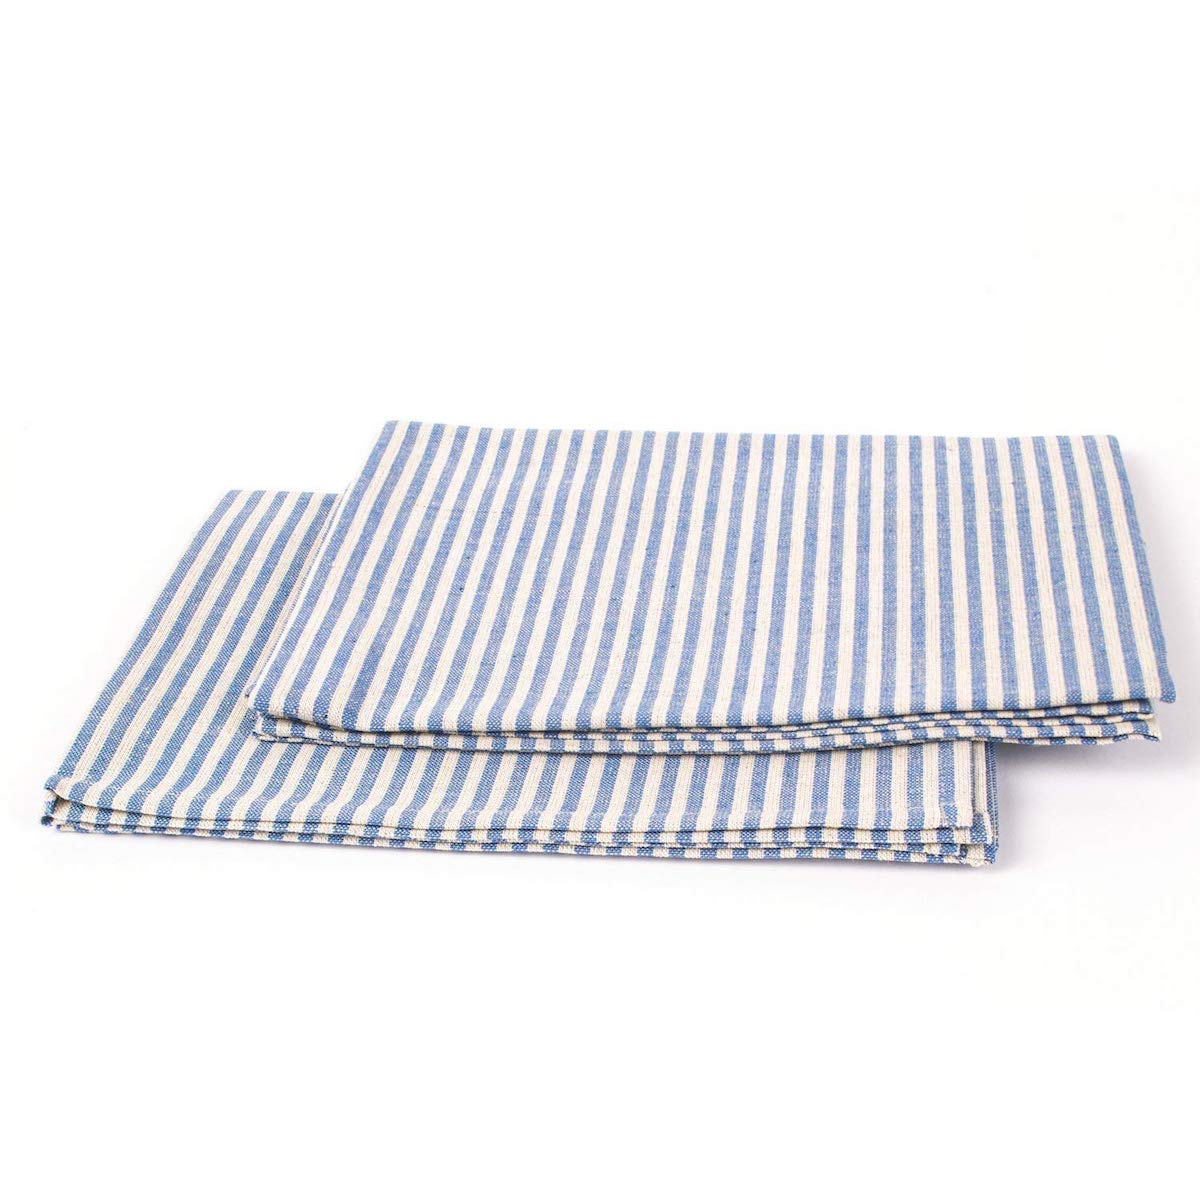 Kitchen Organizing Tea Towel, blue and white striped linen towels